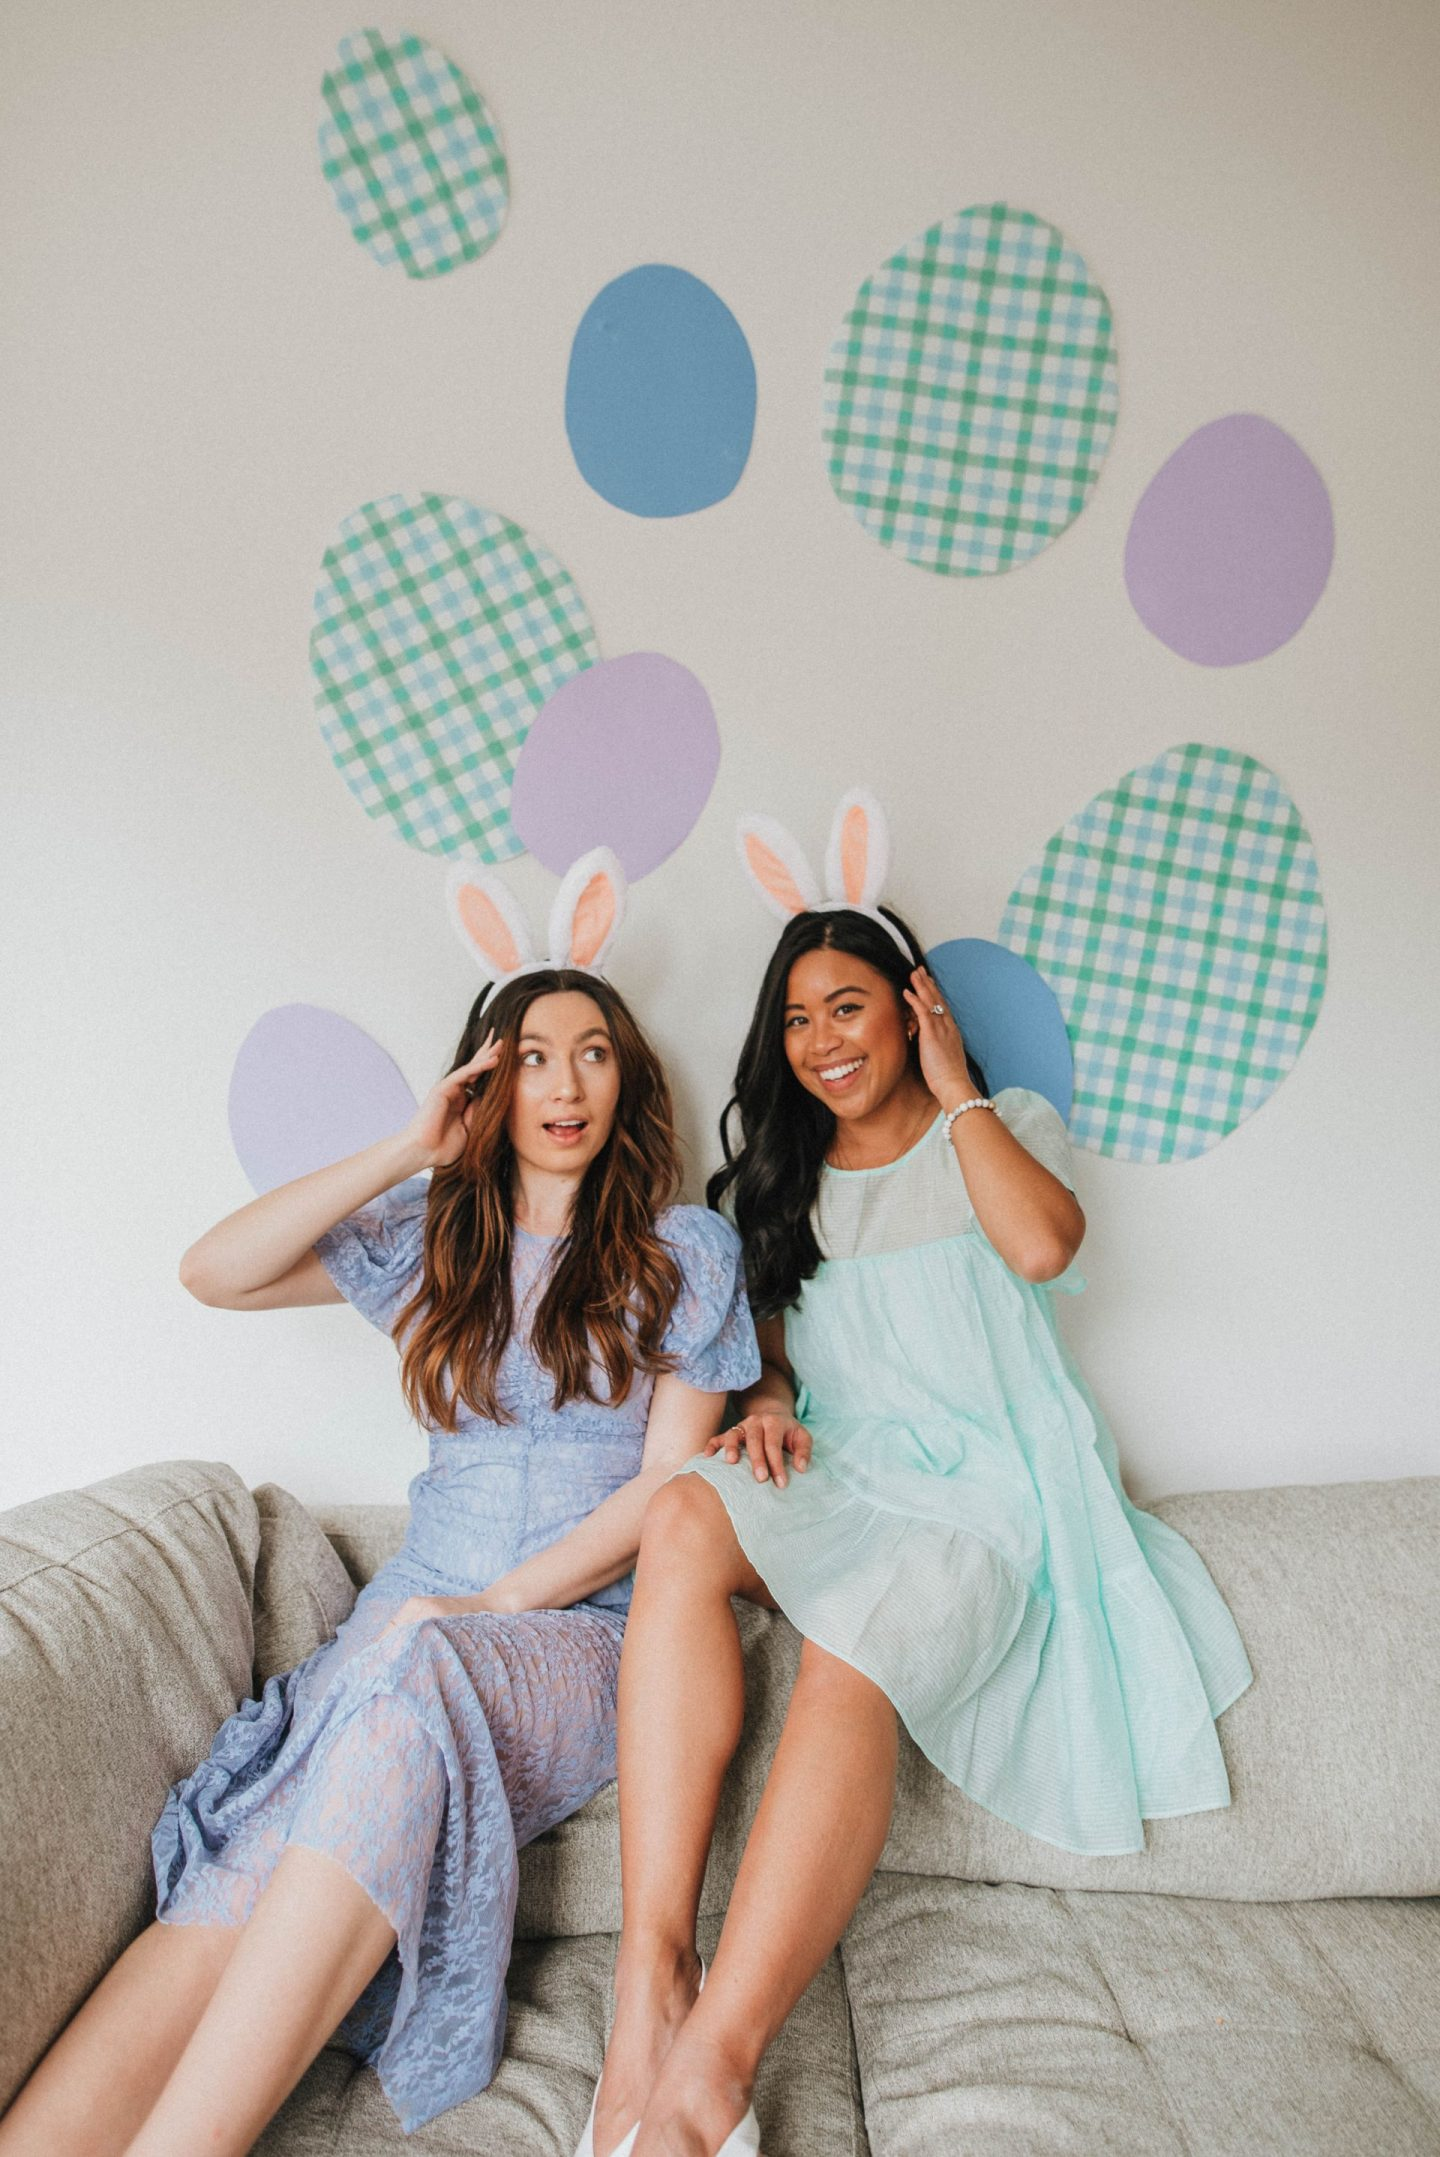 Best friend photo shoot ideas for Easter